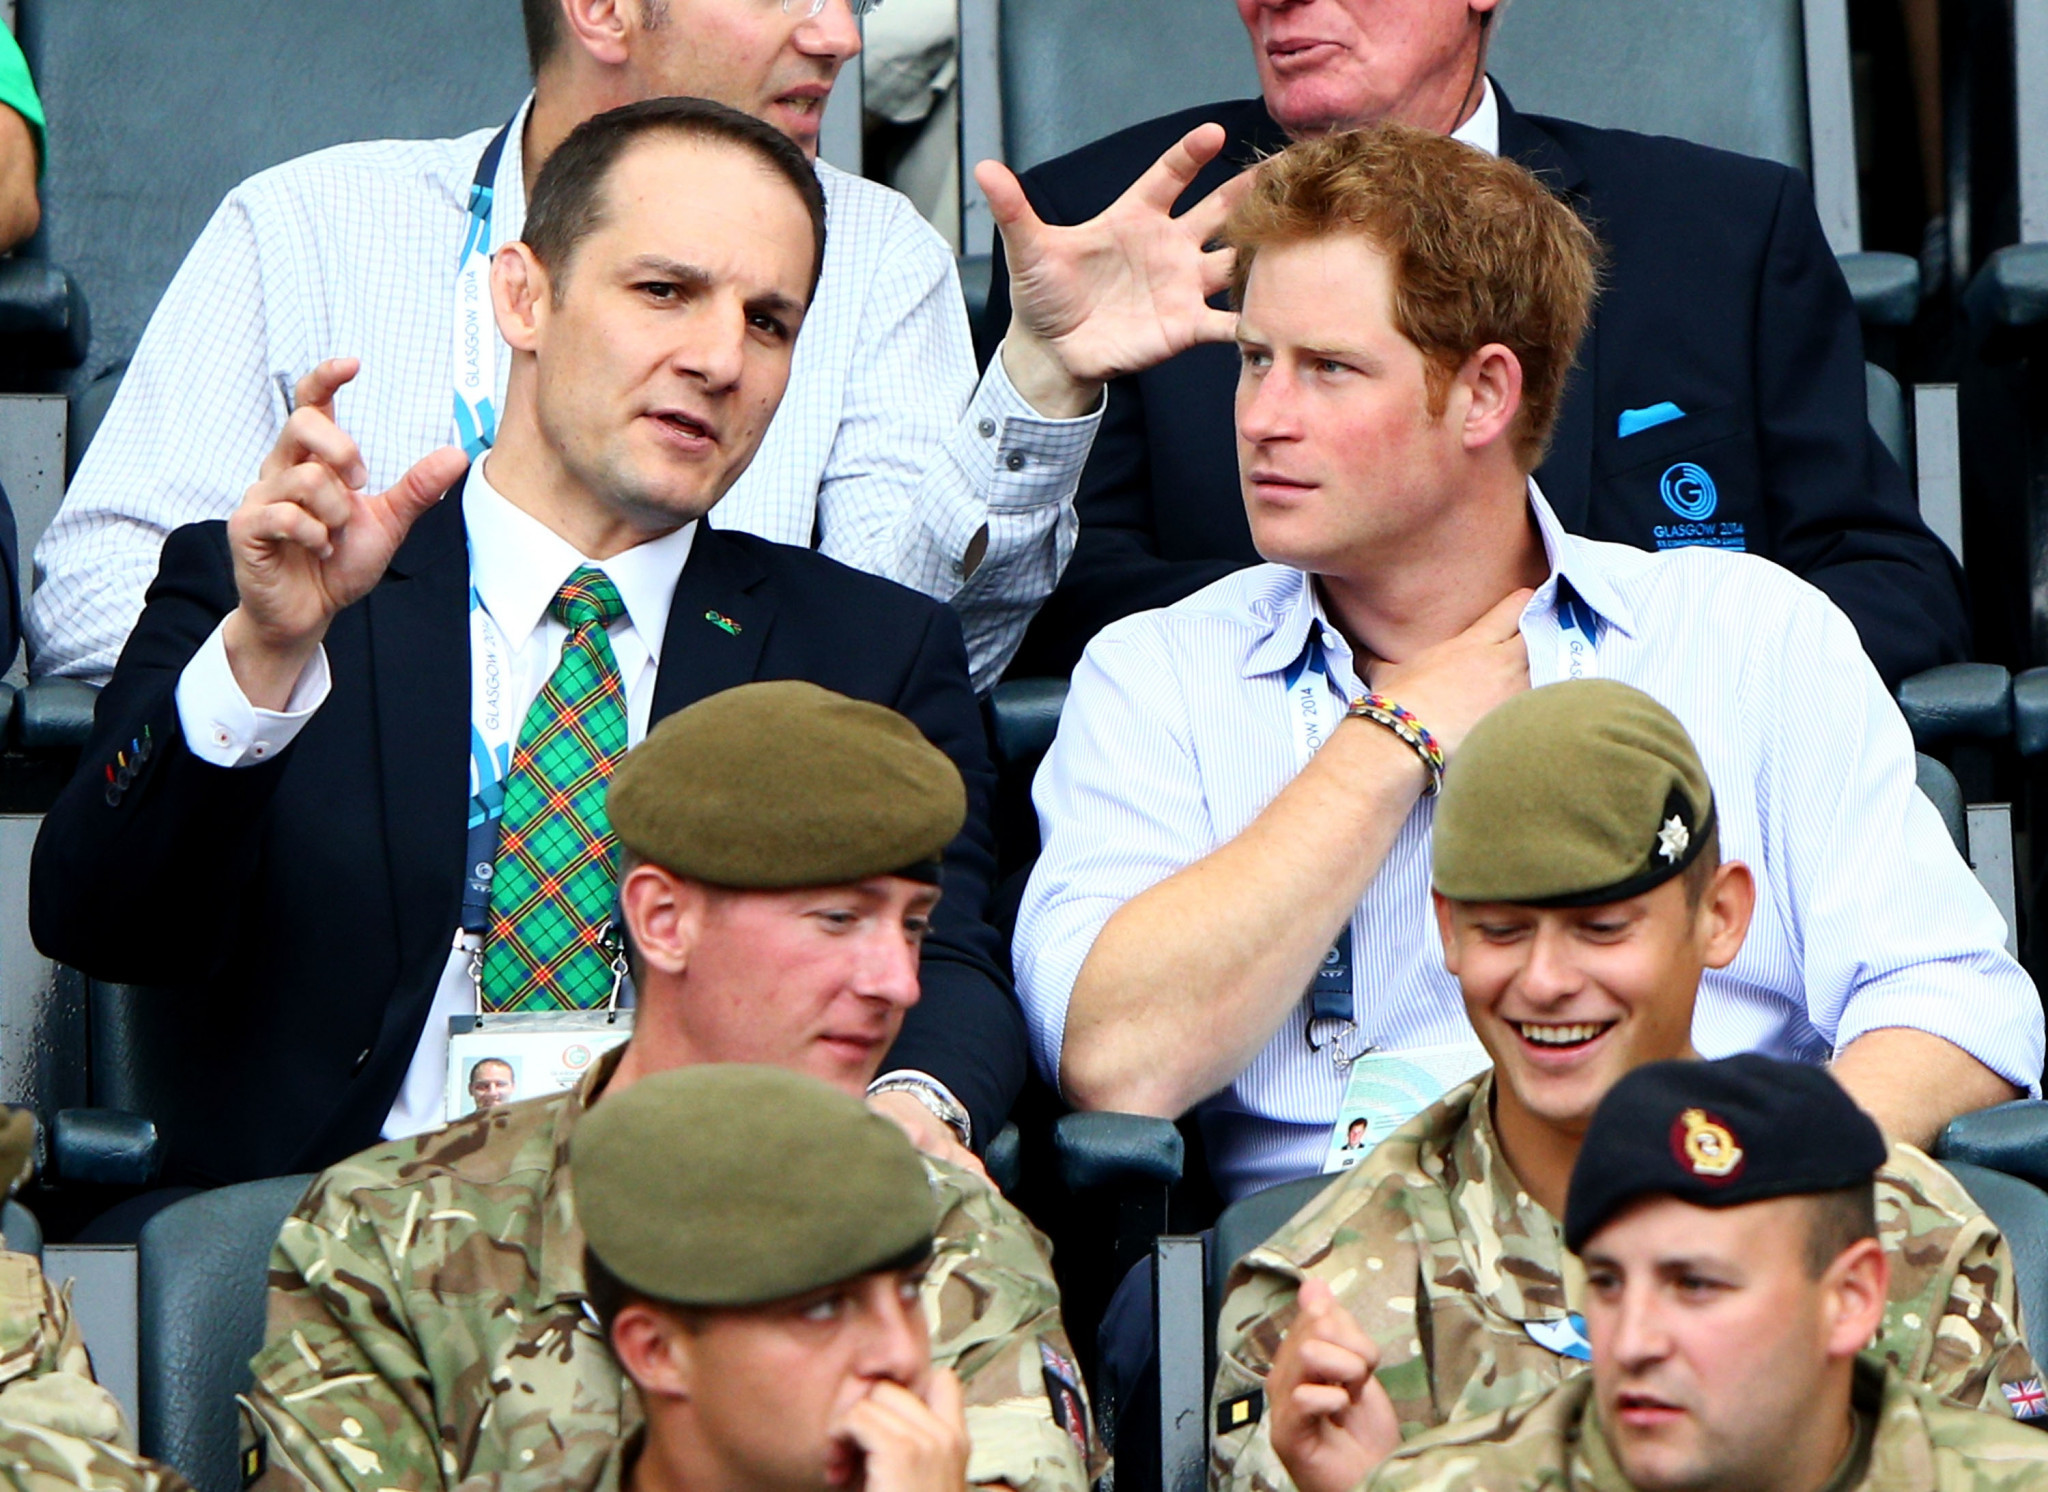 Prince Harry visited the 2014 Commonwealth Games in Glagsow, where he met David Grevemberg, now chief executive of the CGF, and could be at Gold Coast 2018 ©Getty Images